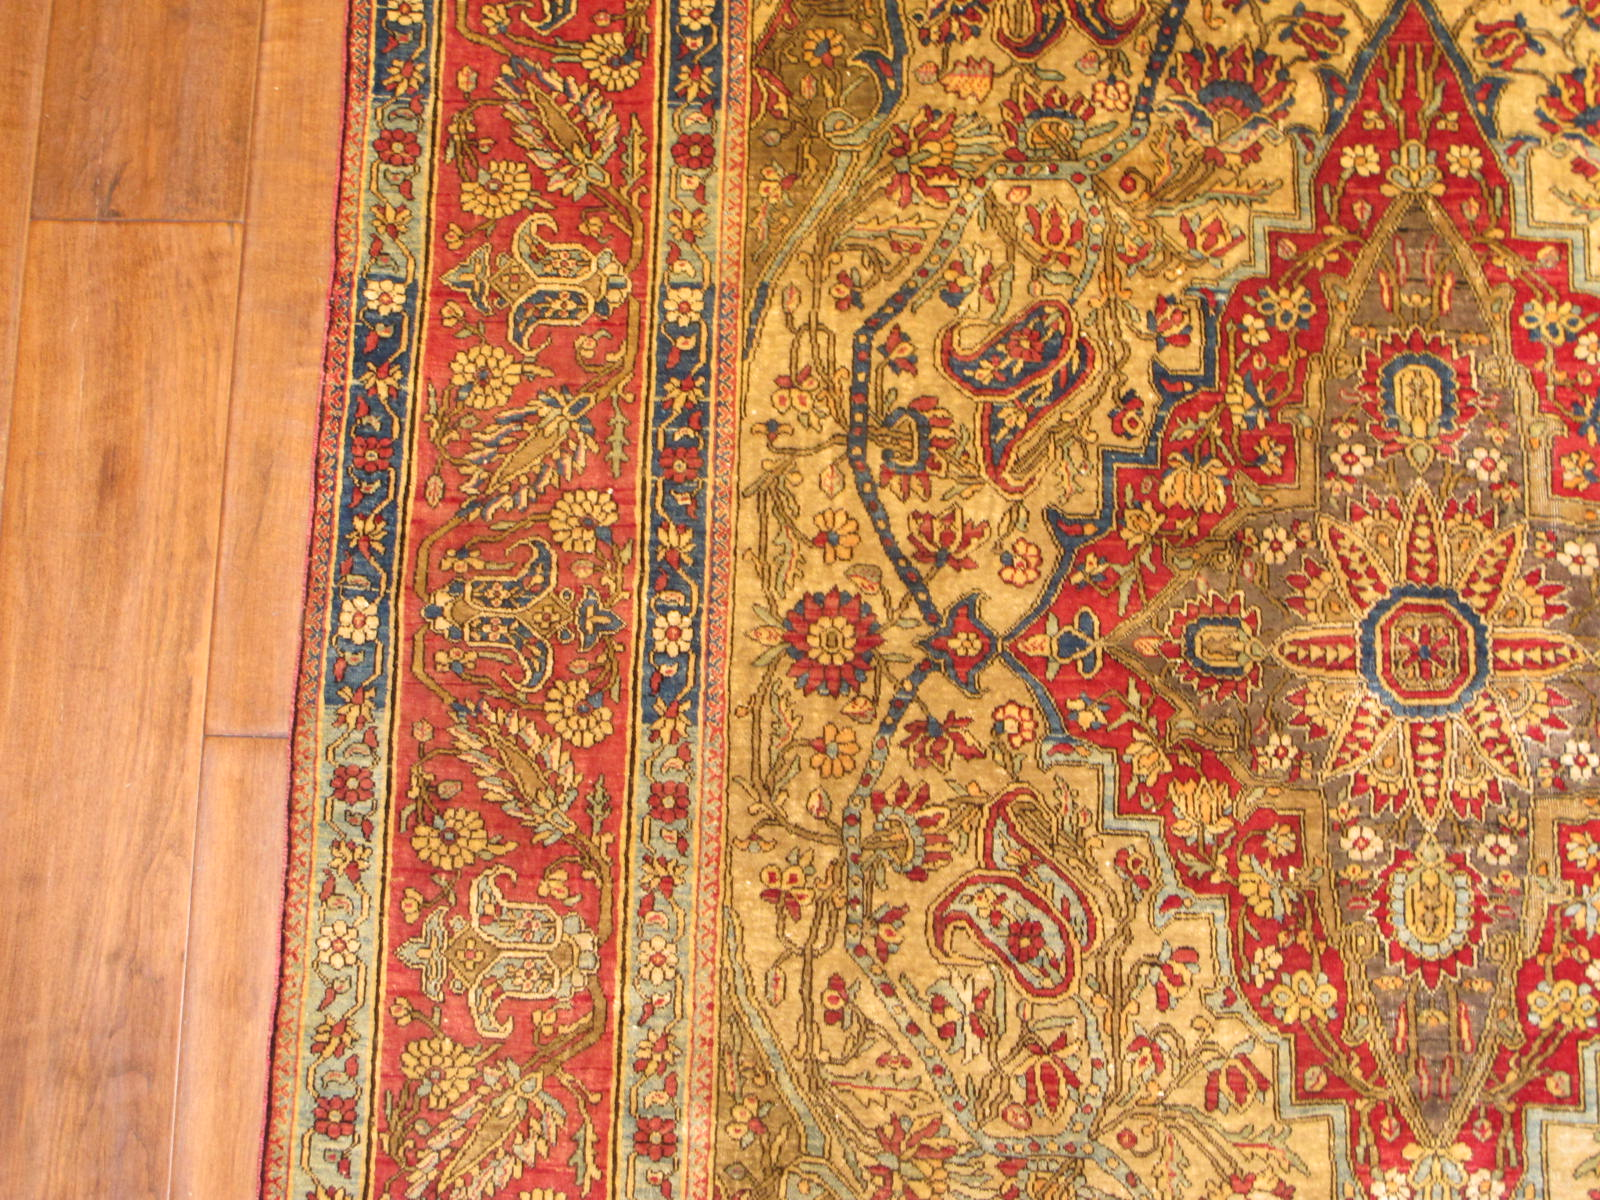 23206 antique persian kashan mohtasham silk rug 4,4 x 7,4 (3)